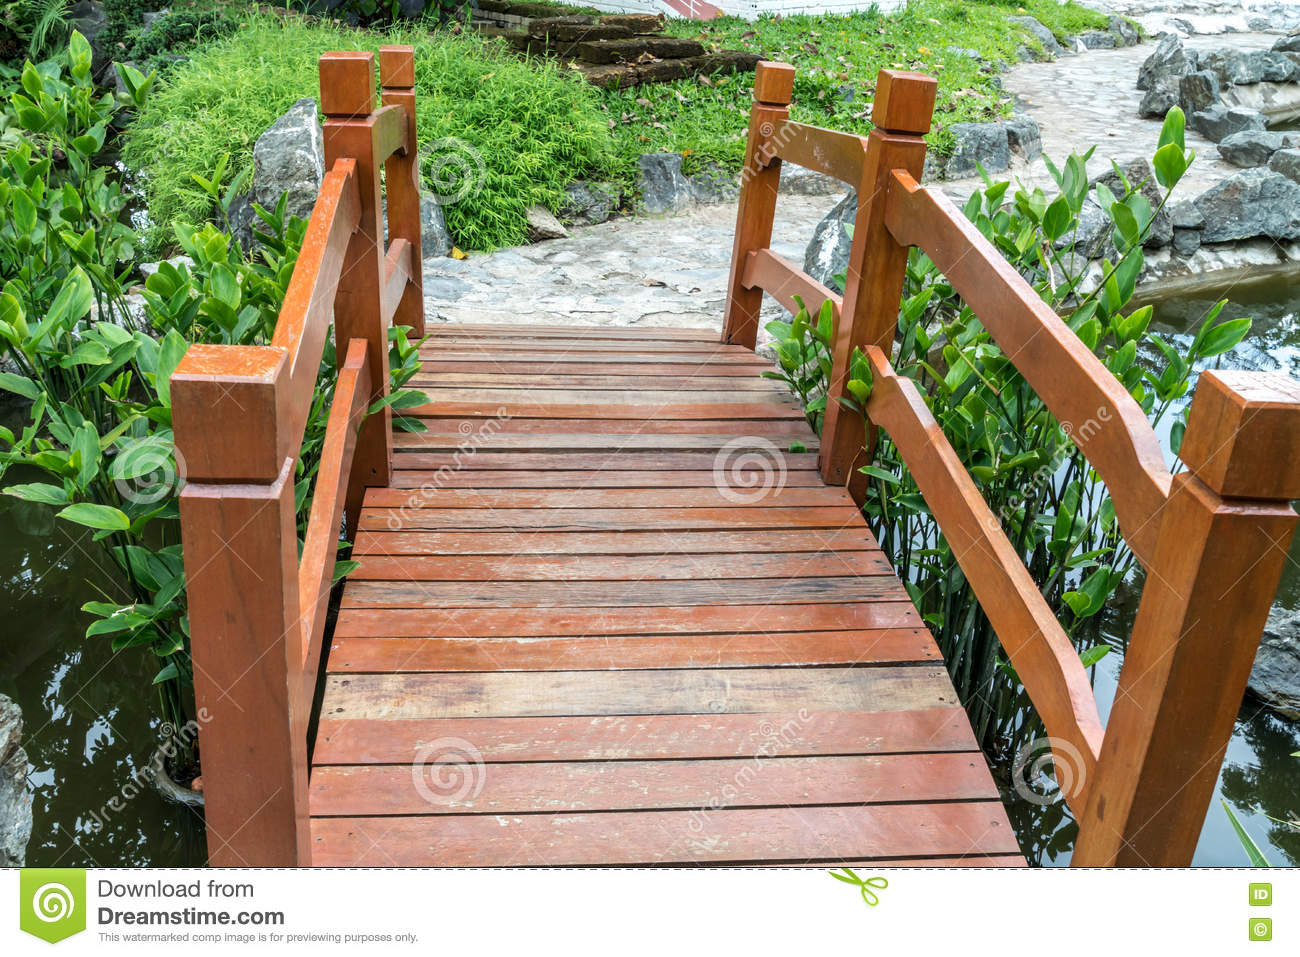 Download Small Bridge In Garden Stock Image. Image Of Scenic, Summer    73831277